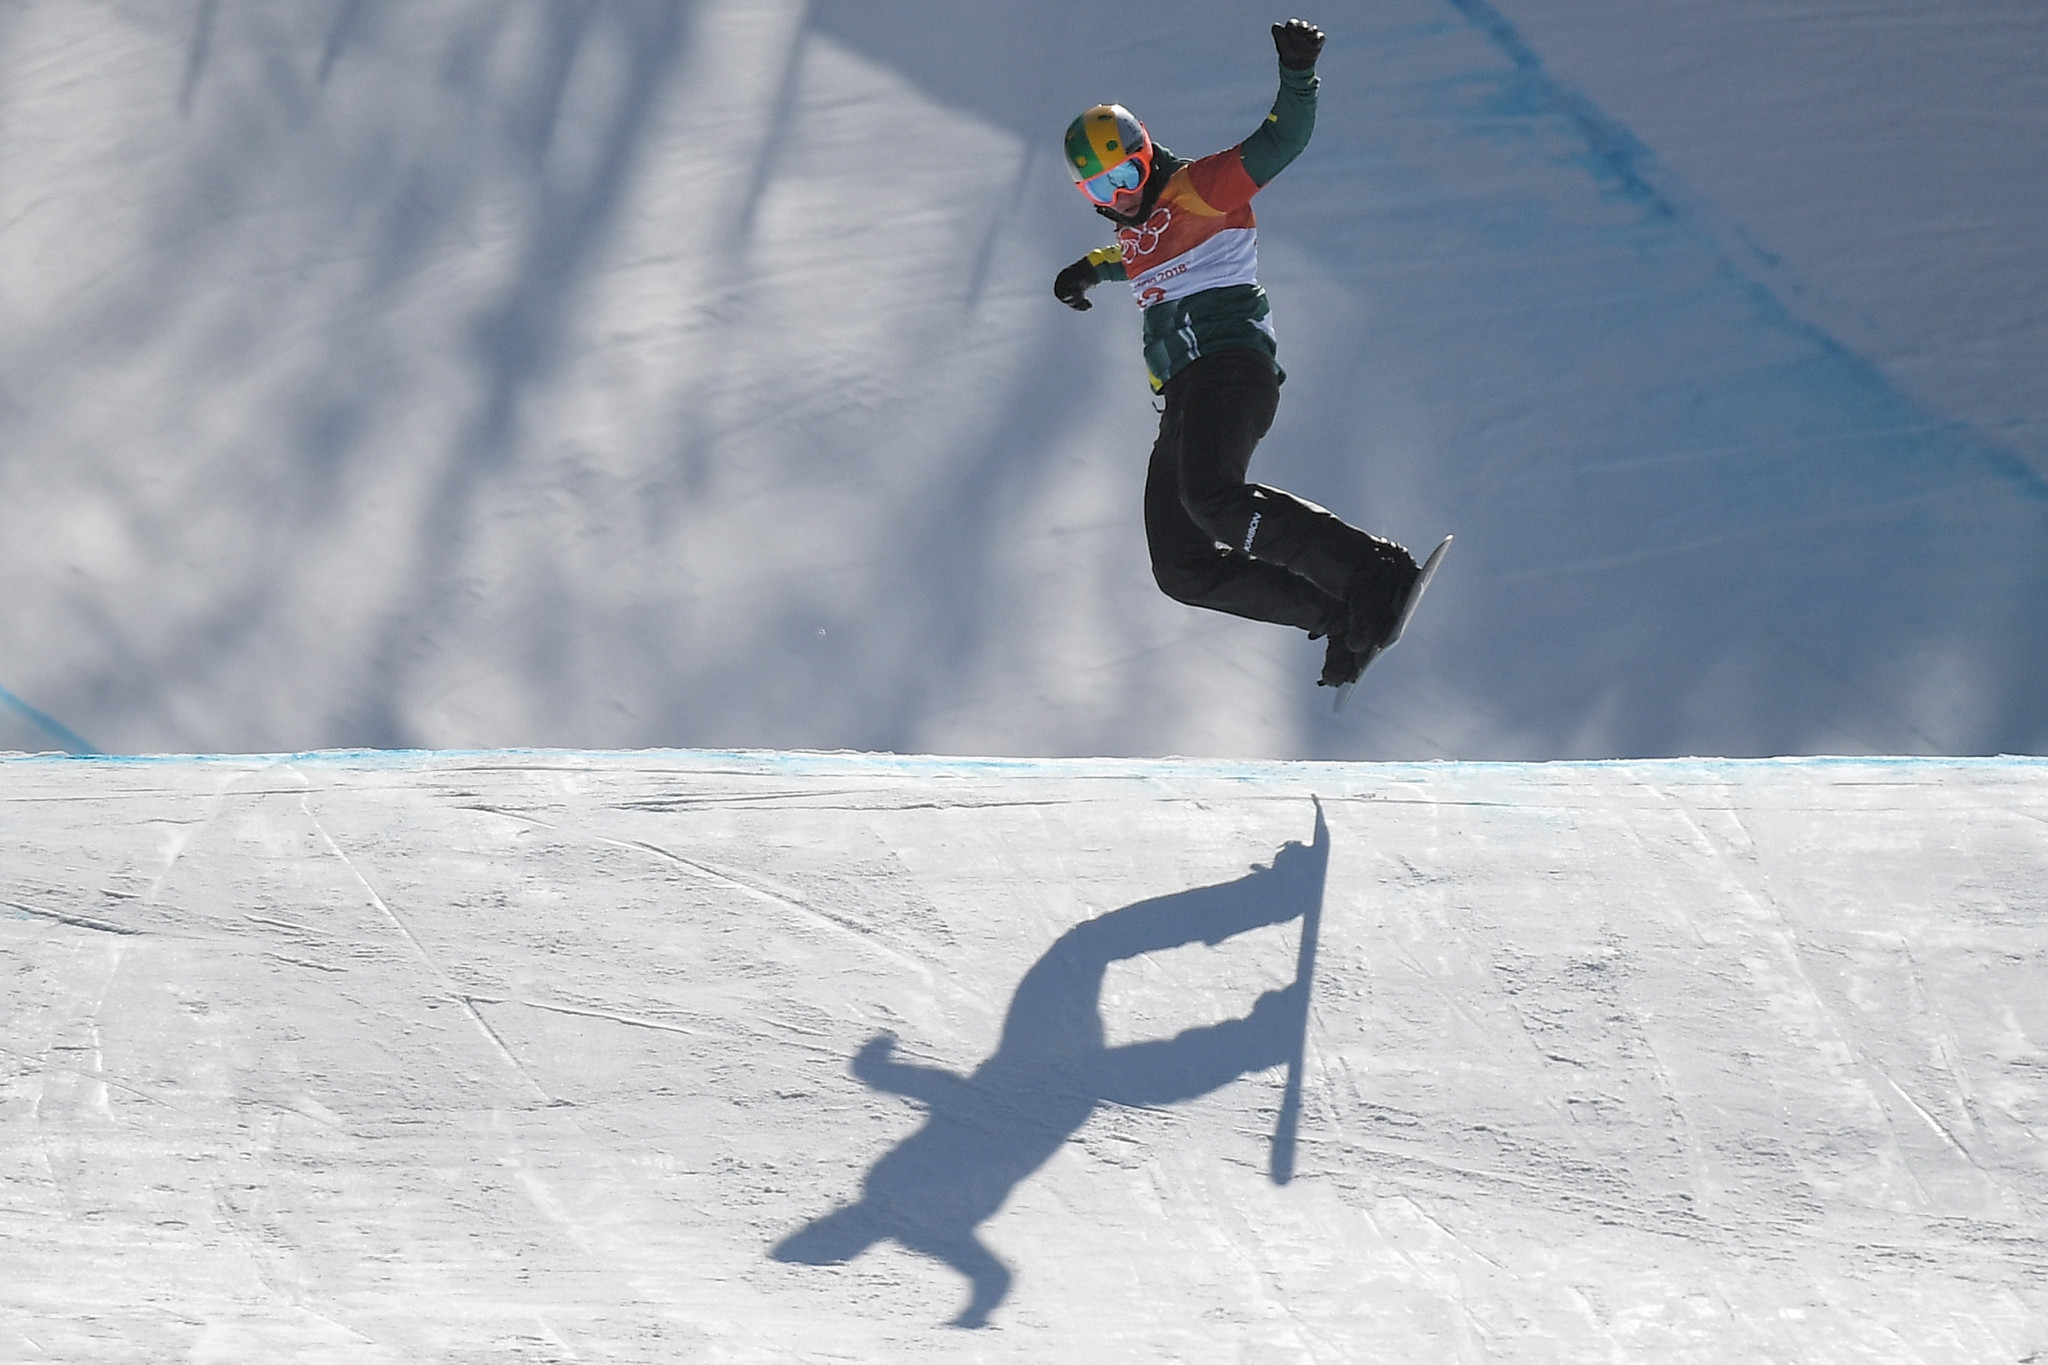 Pyeongchang 2018 silver medallist participates at snowboard cross festival in Australia